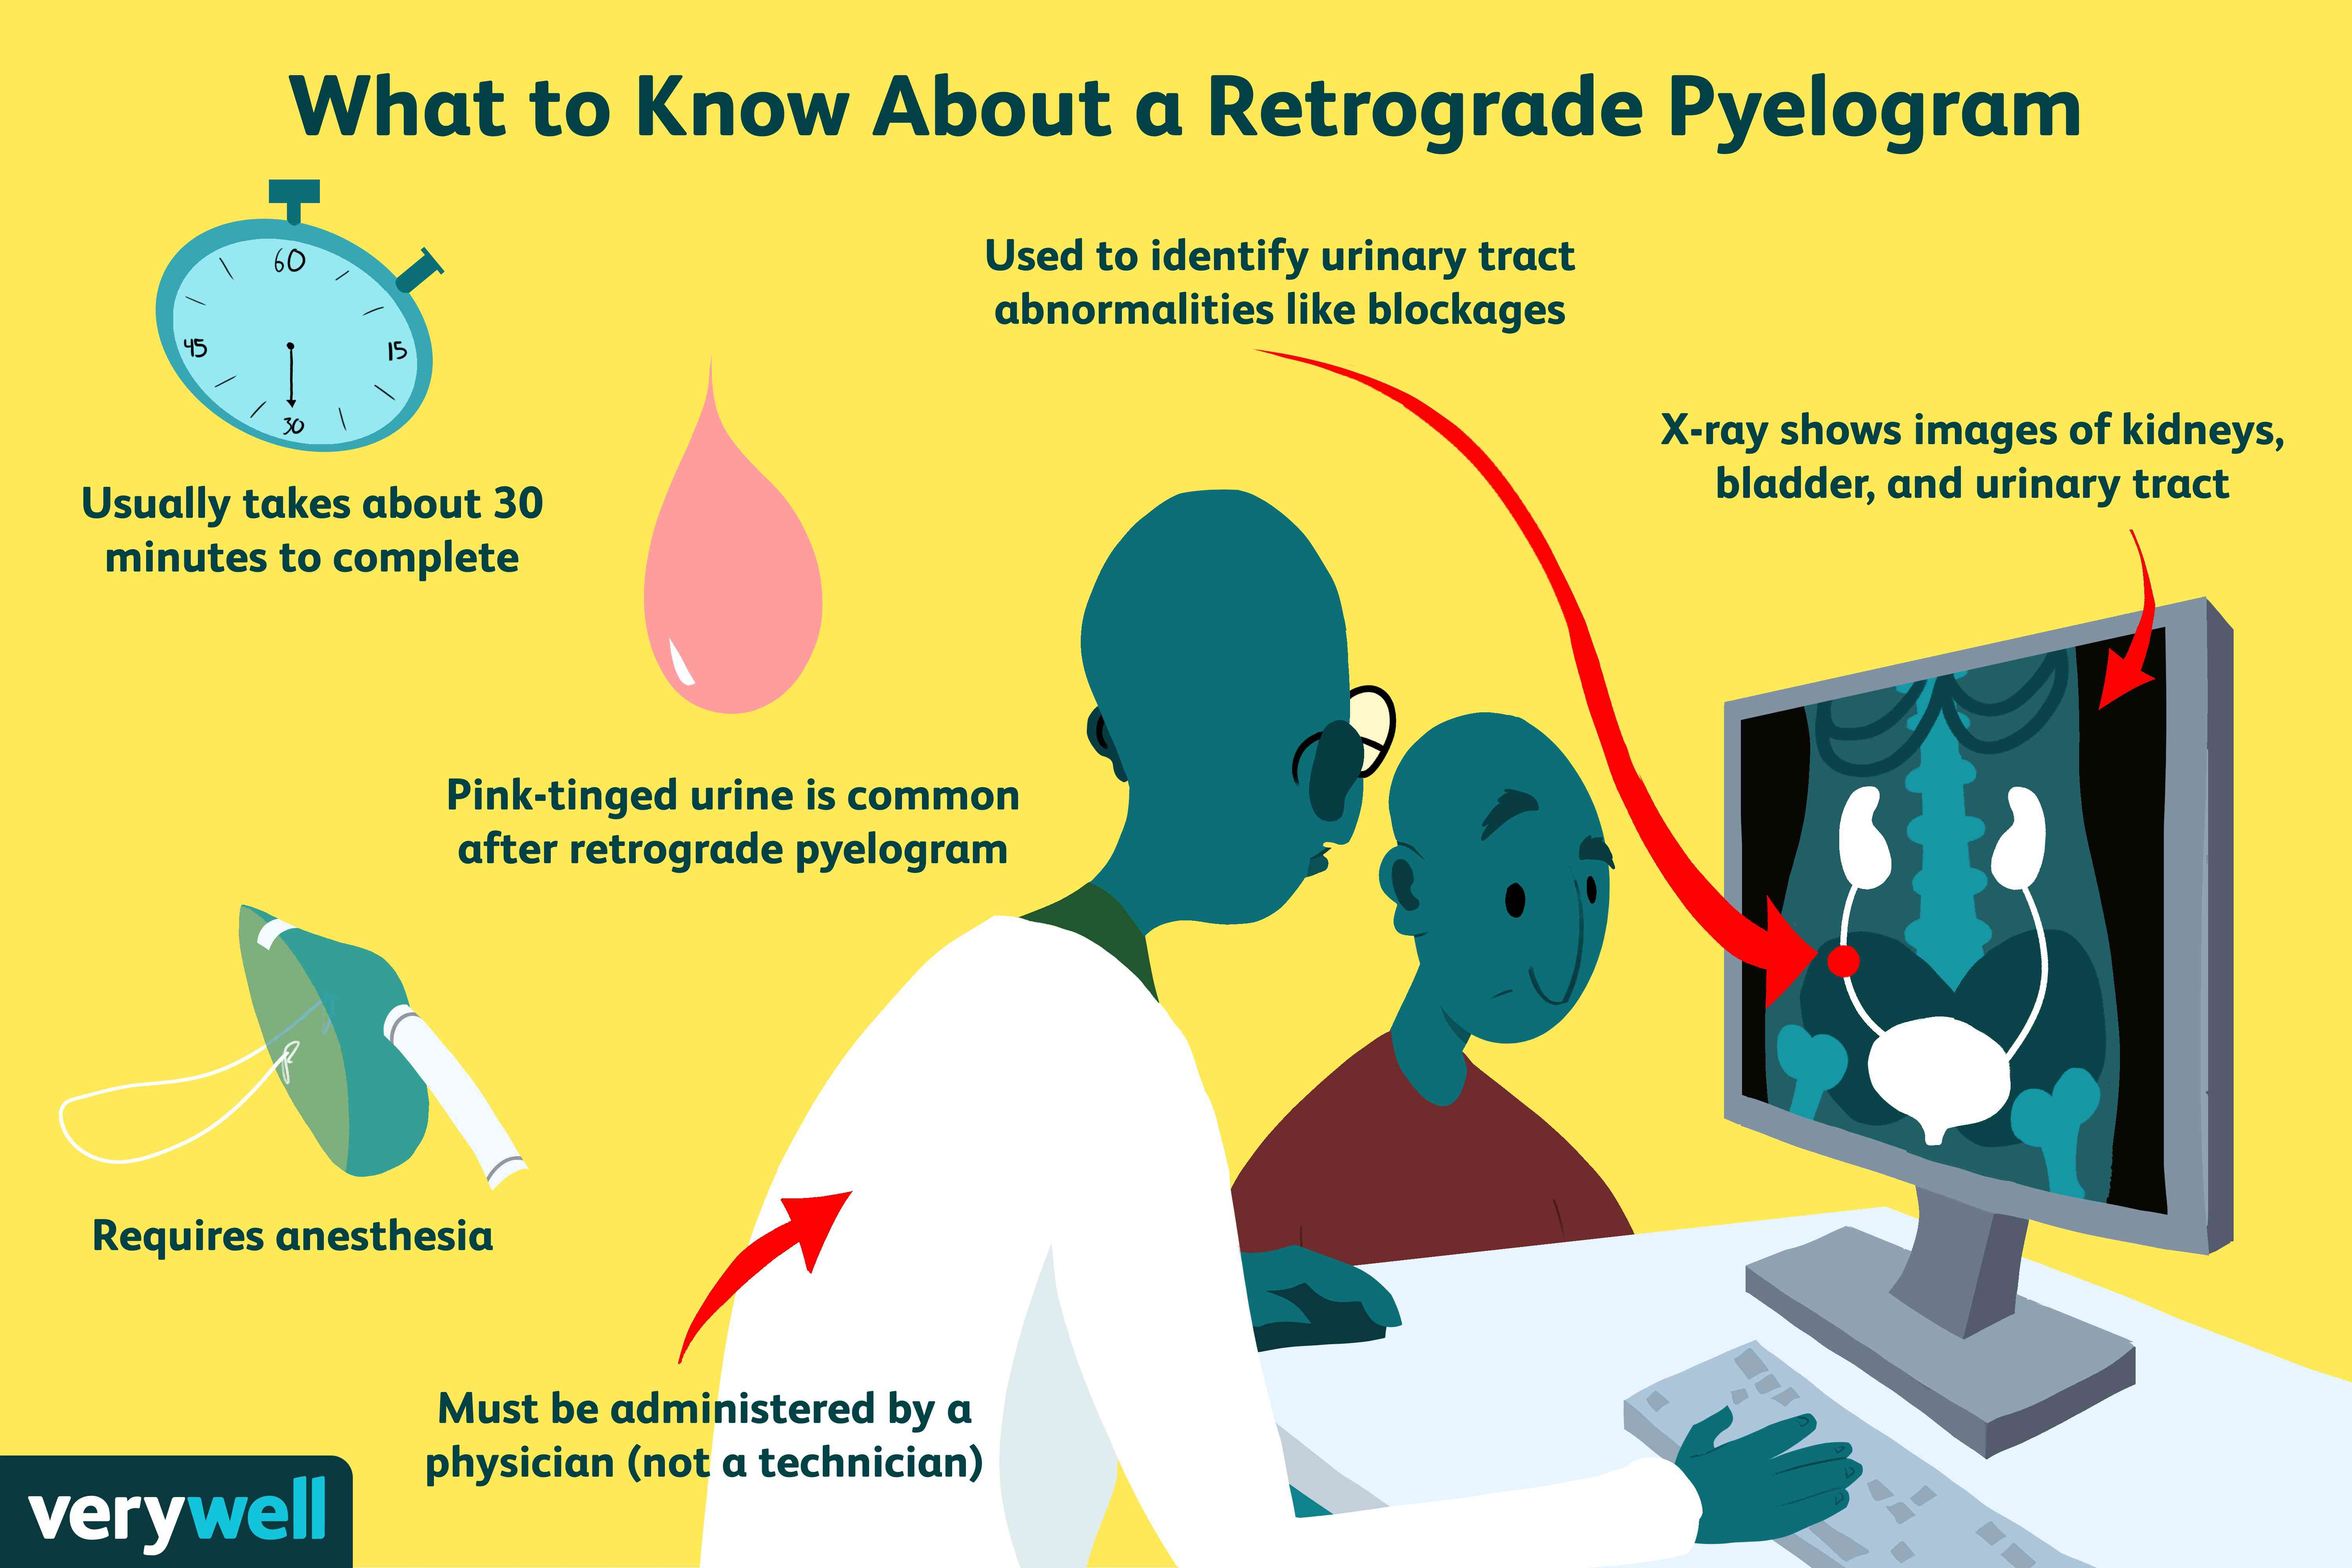 What to know about a retrograde pyelogram